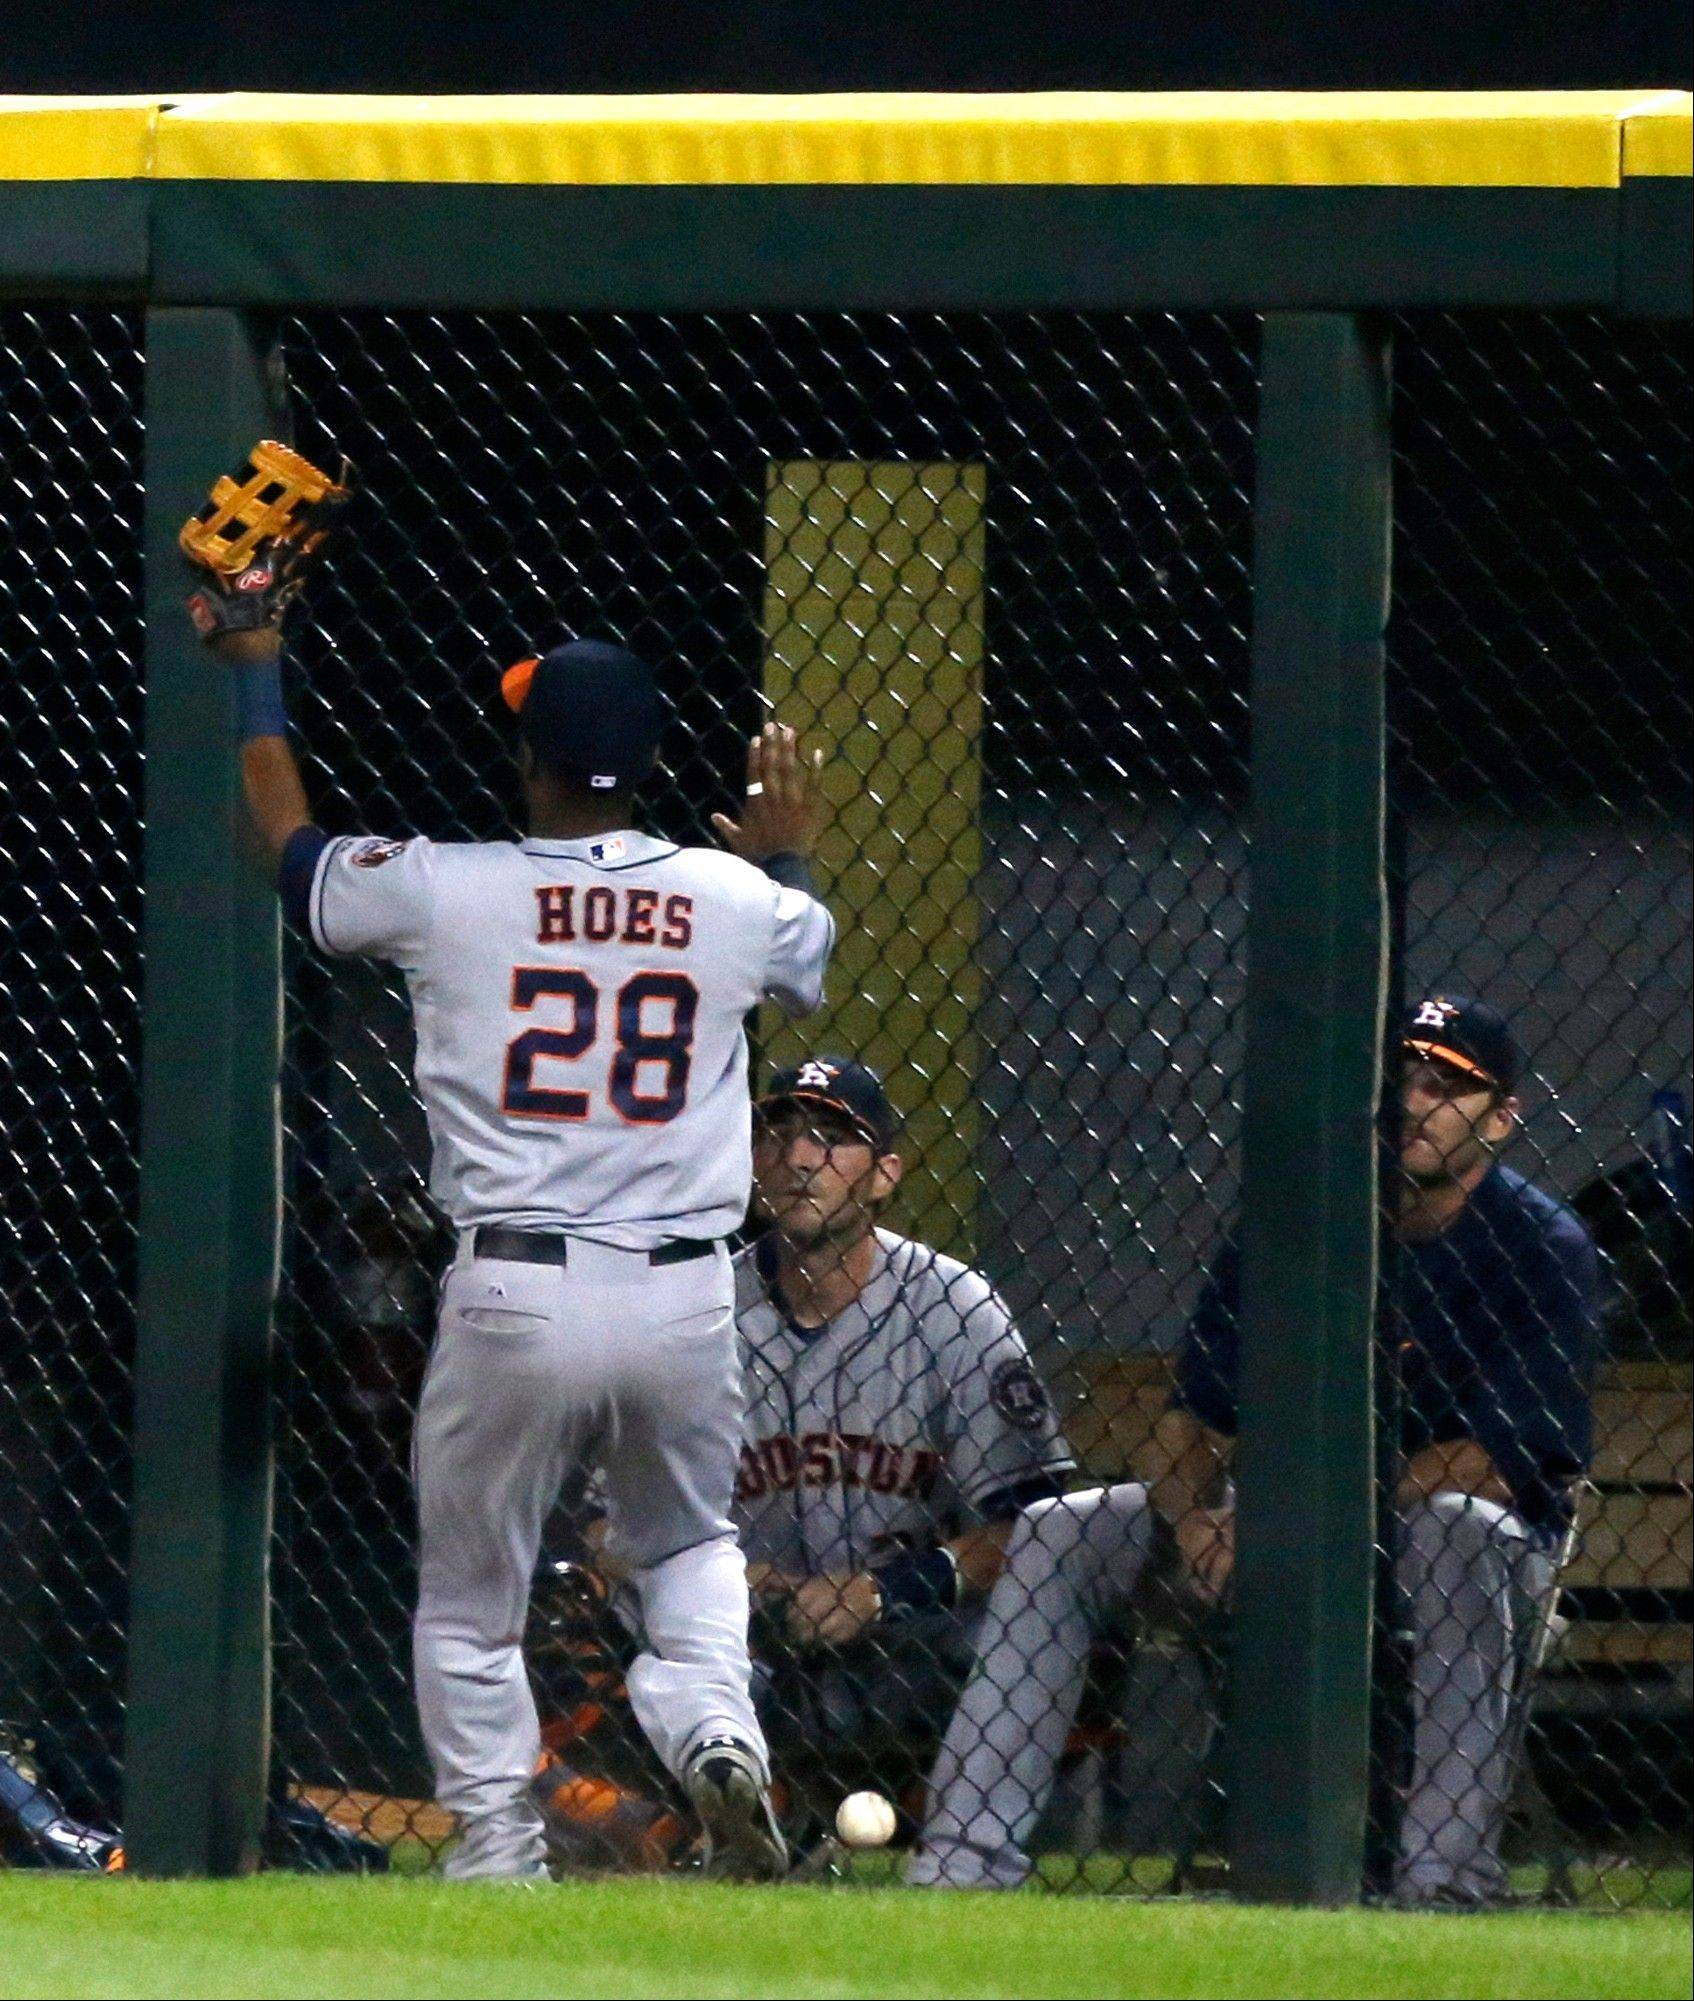 Houston Astros right fielder L.J. Hoes misjudges a fly ball hit bay Chicago White Sox's Gordon Beckham during the fifth inning of a baseball game, Monday, Aug. 26, 2013, in Chicago. Alejandro De Aza scored on Hoes' fielding error. (AP Photo/Charles Rex Arbogast)